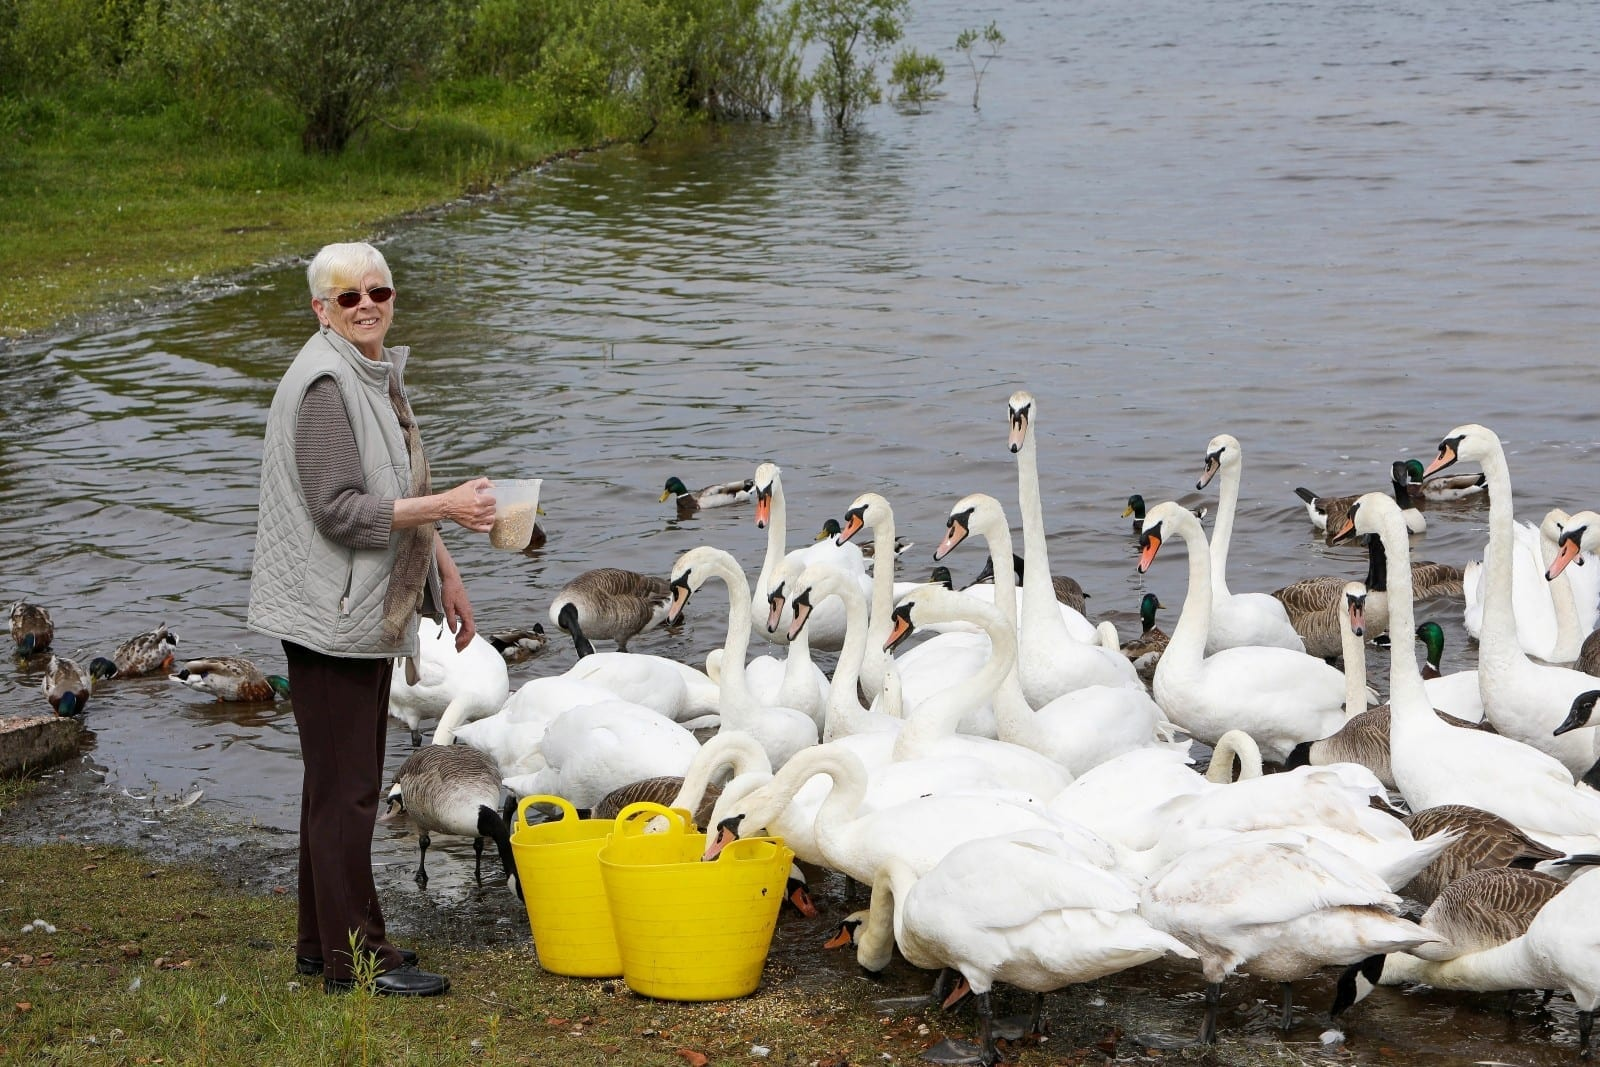 Gran Saves Hundreds Of Swans By Feeding Them Everyday After Their Habitat Was Destroyed In 2009